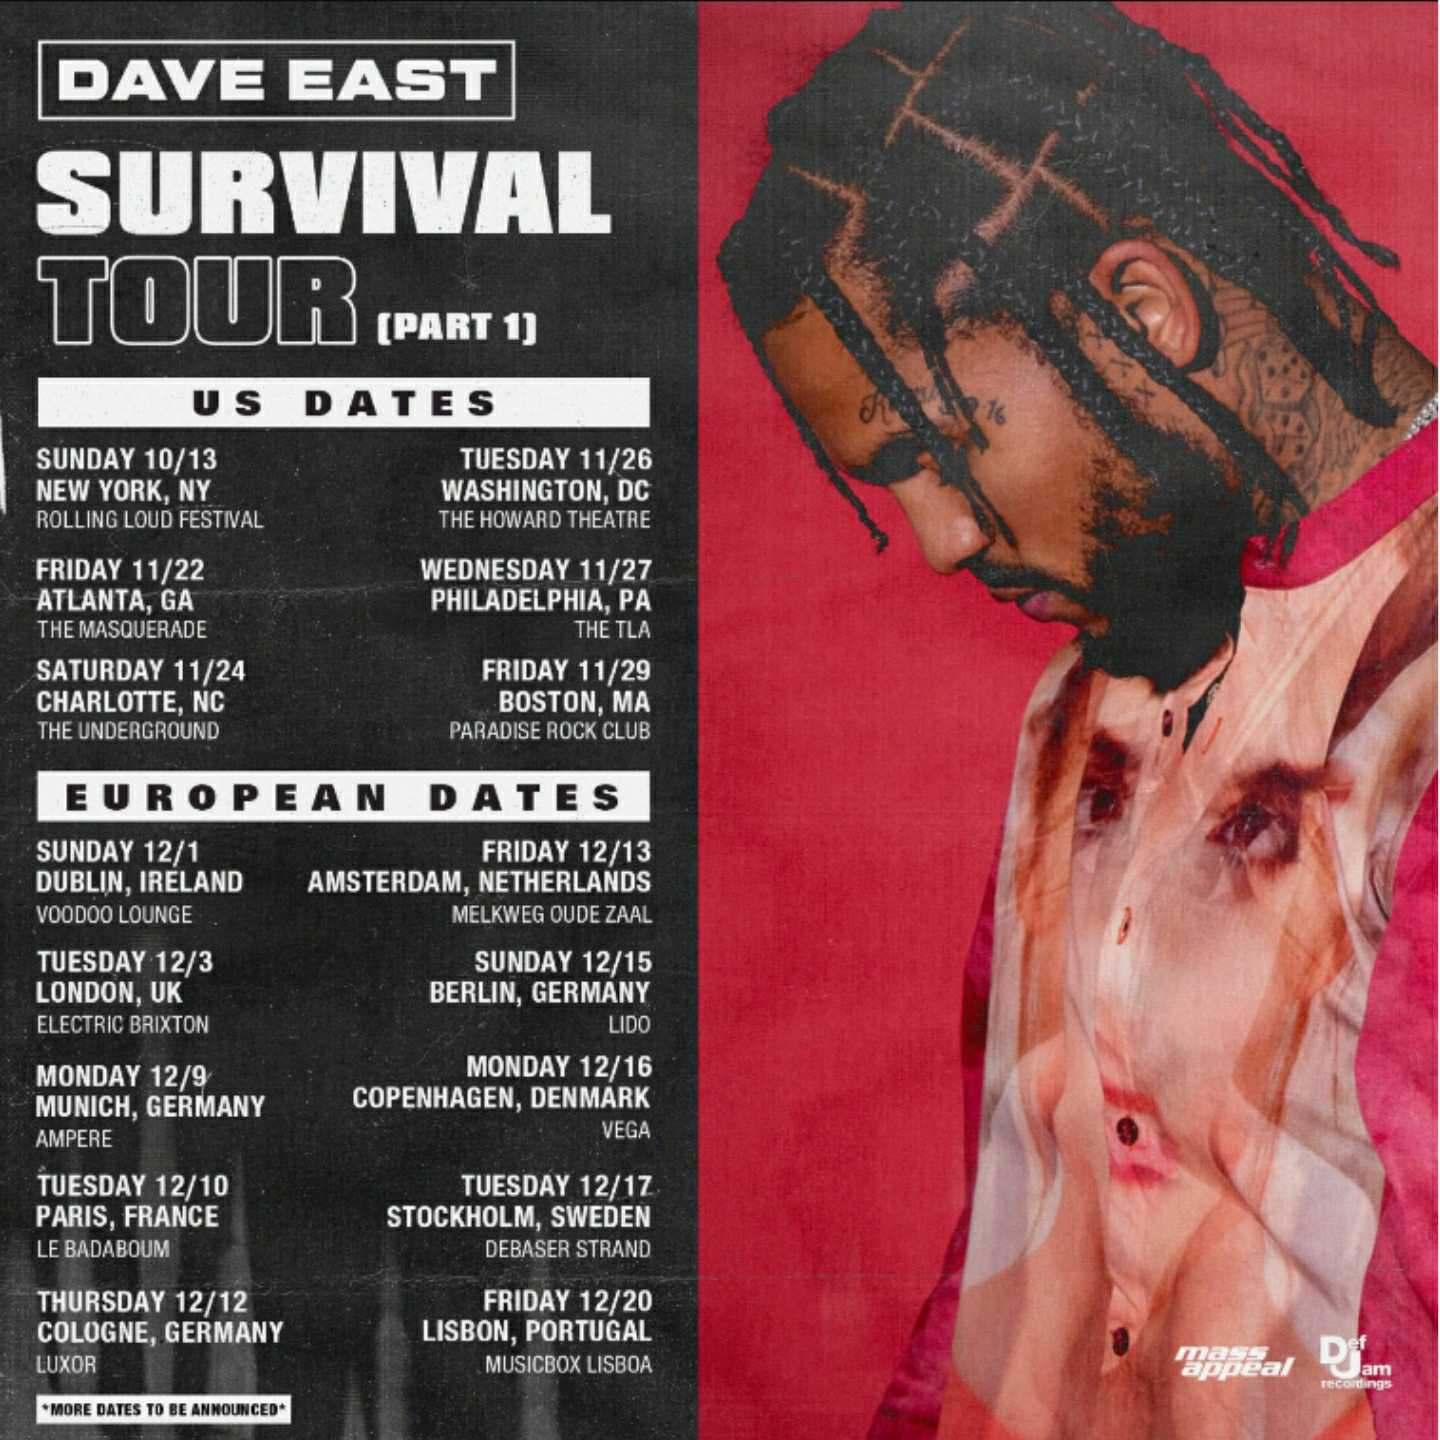 Dave East, Survival Tour, Survival Album, 360 MAGAZINE, Def Jam, rapper, hip hop, wu-tang, method man